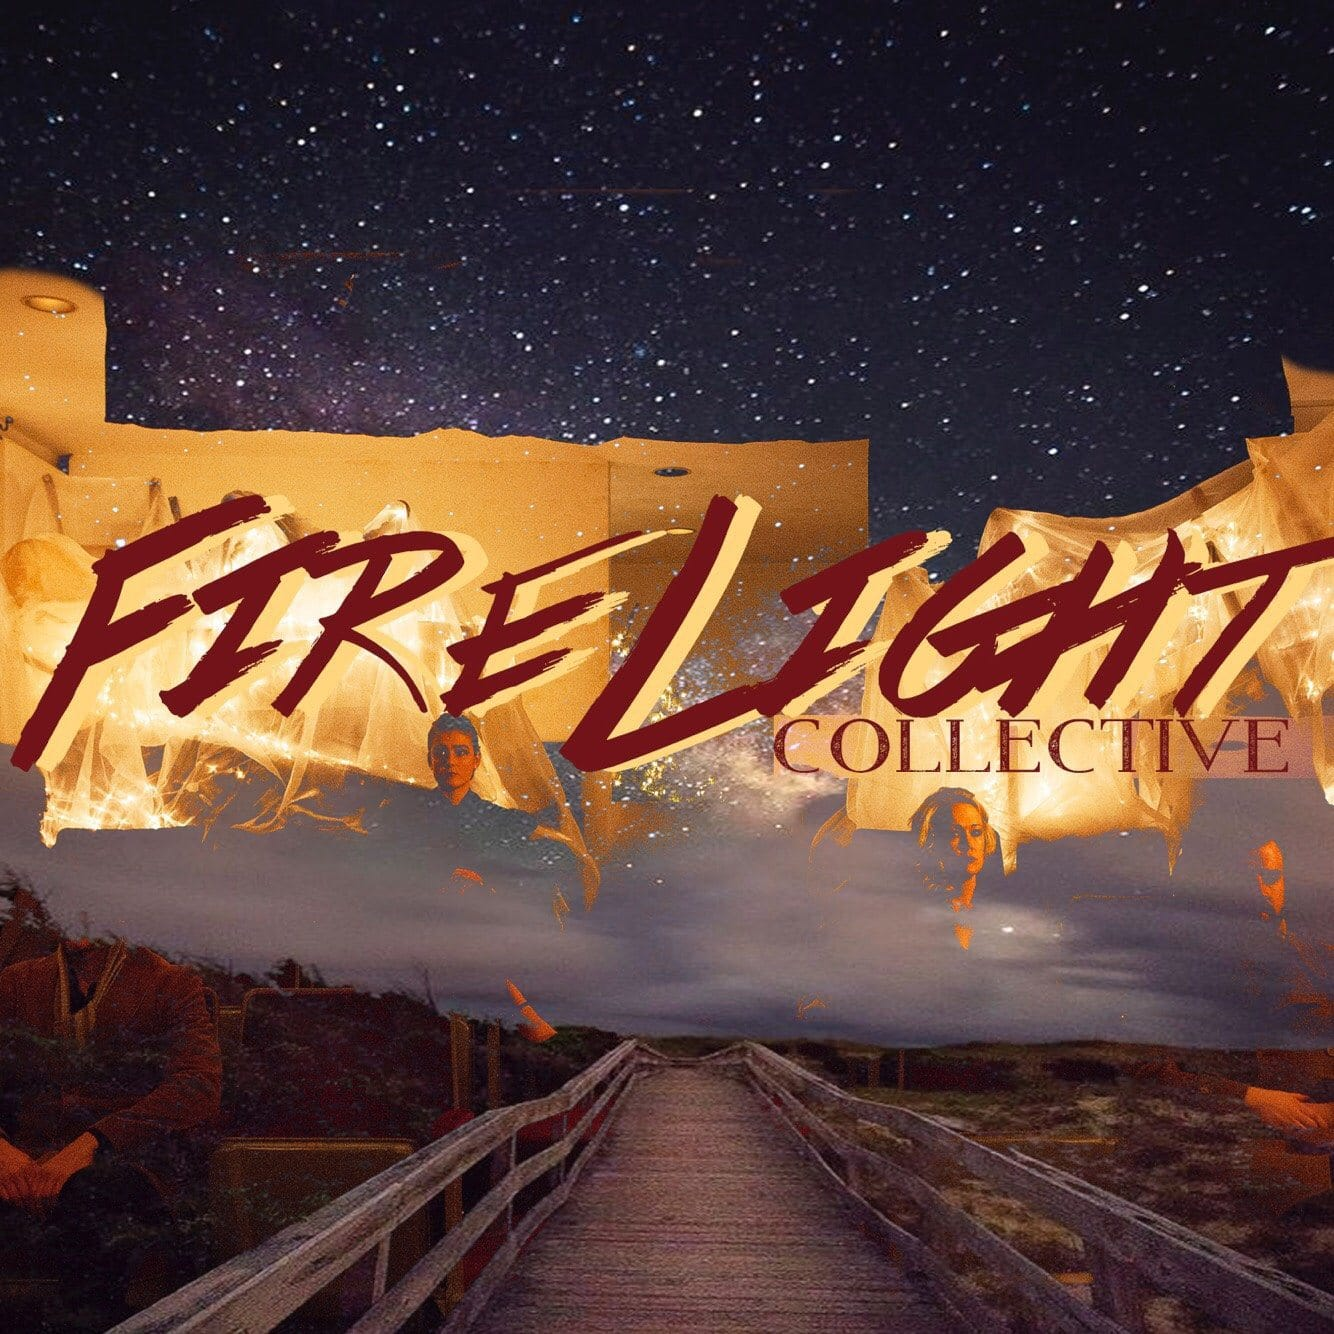 Firelight Collective - Nathan Keyes - Stephanie Feury - Studio Theatre - Immersive Theater - Stars in the Night